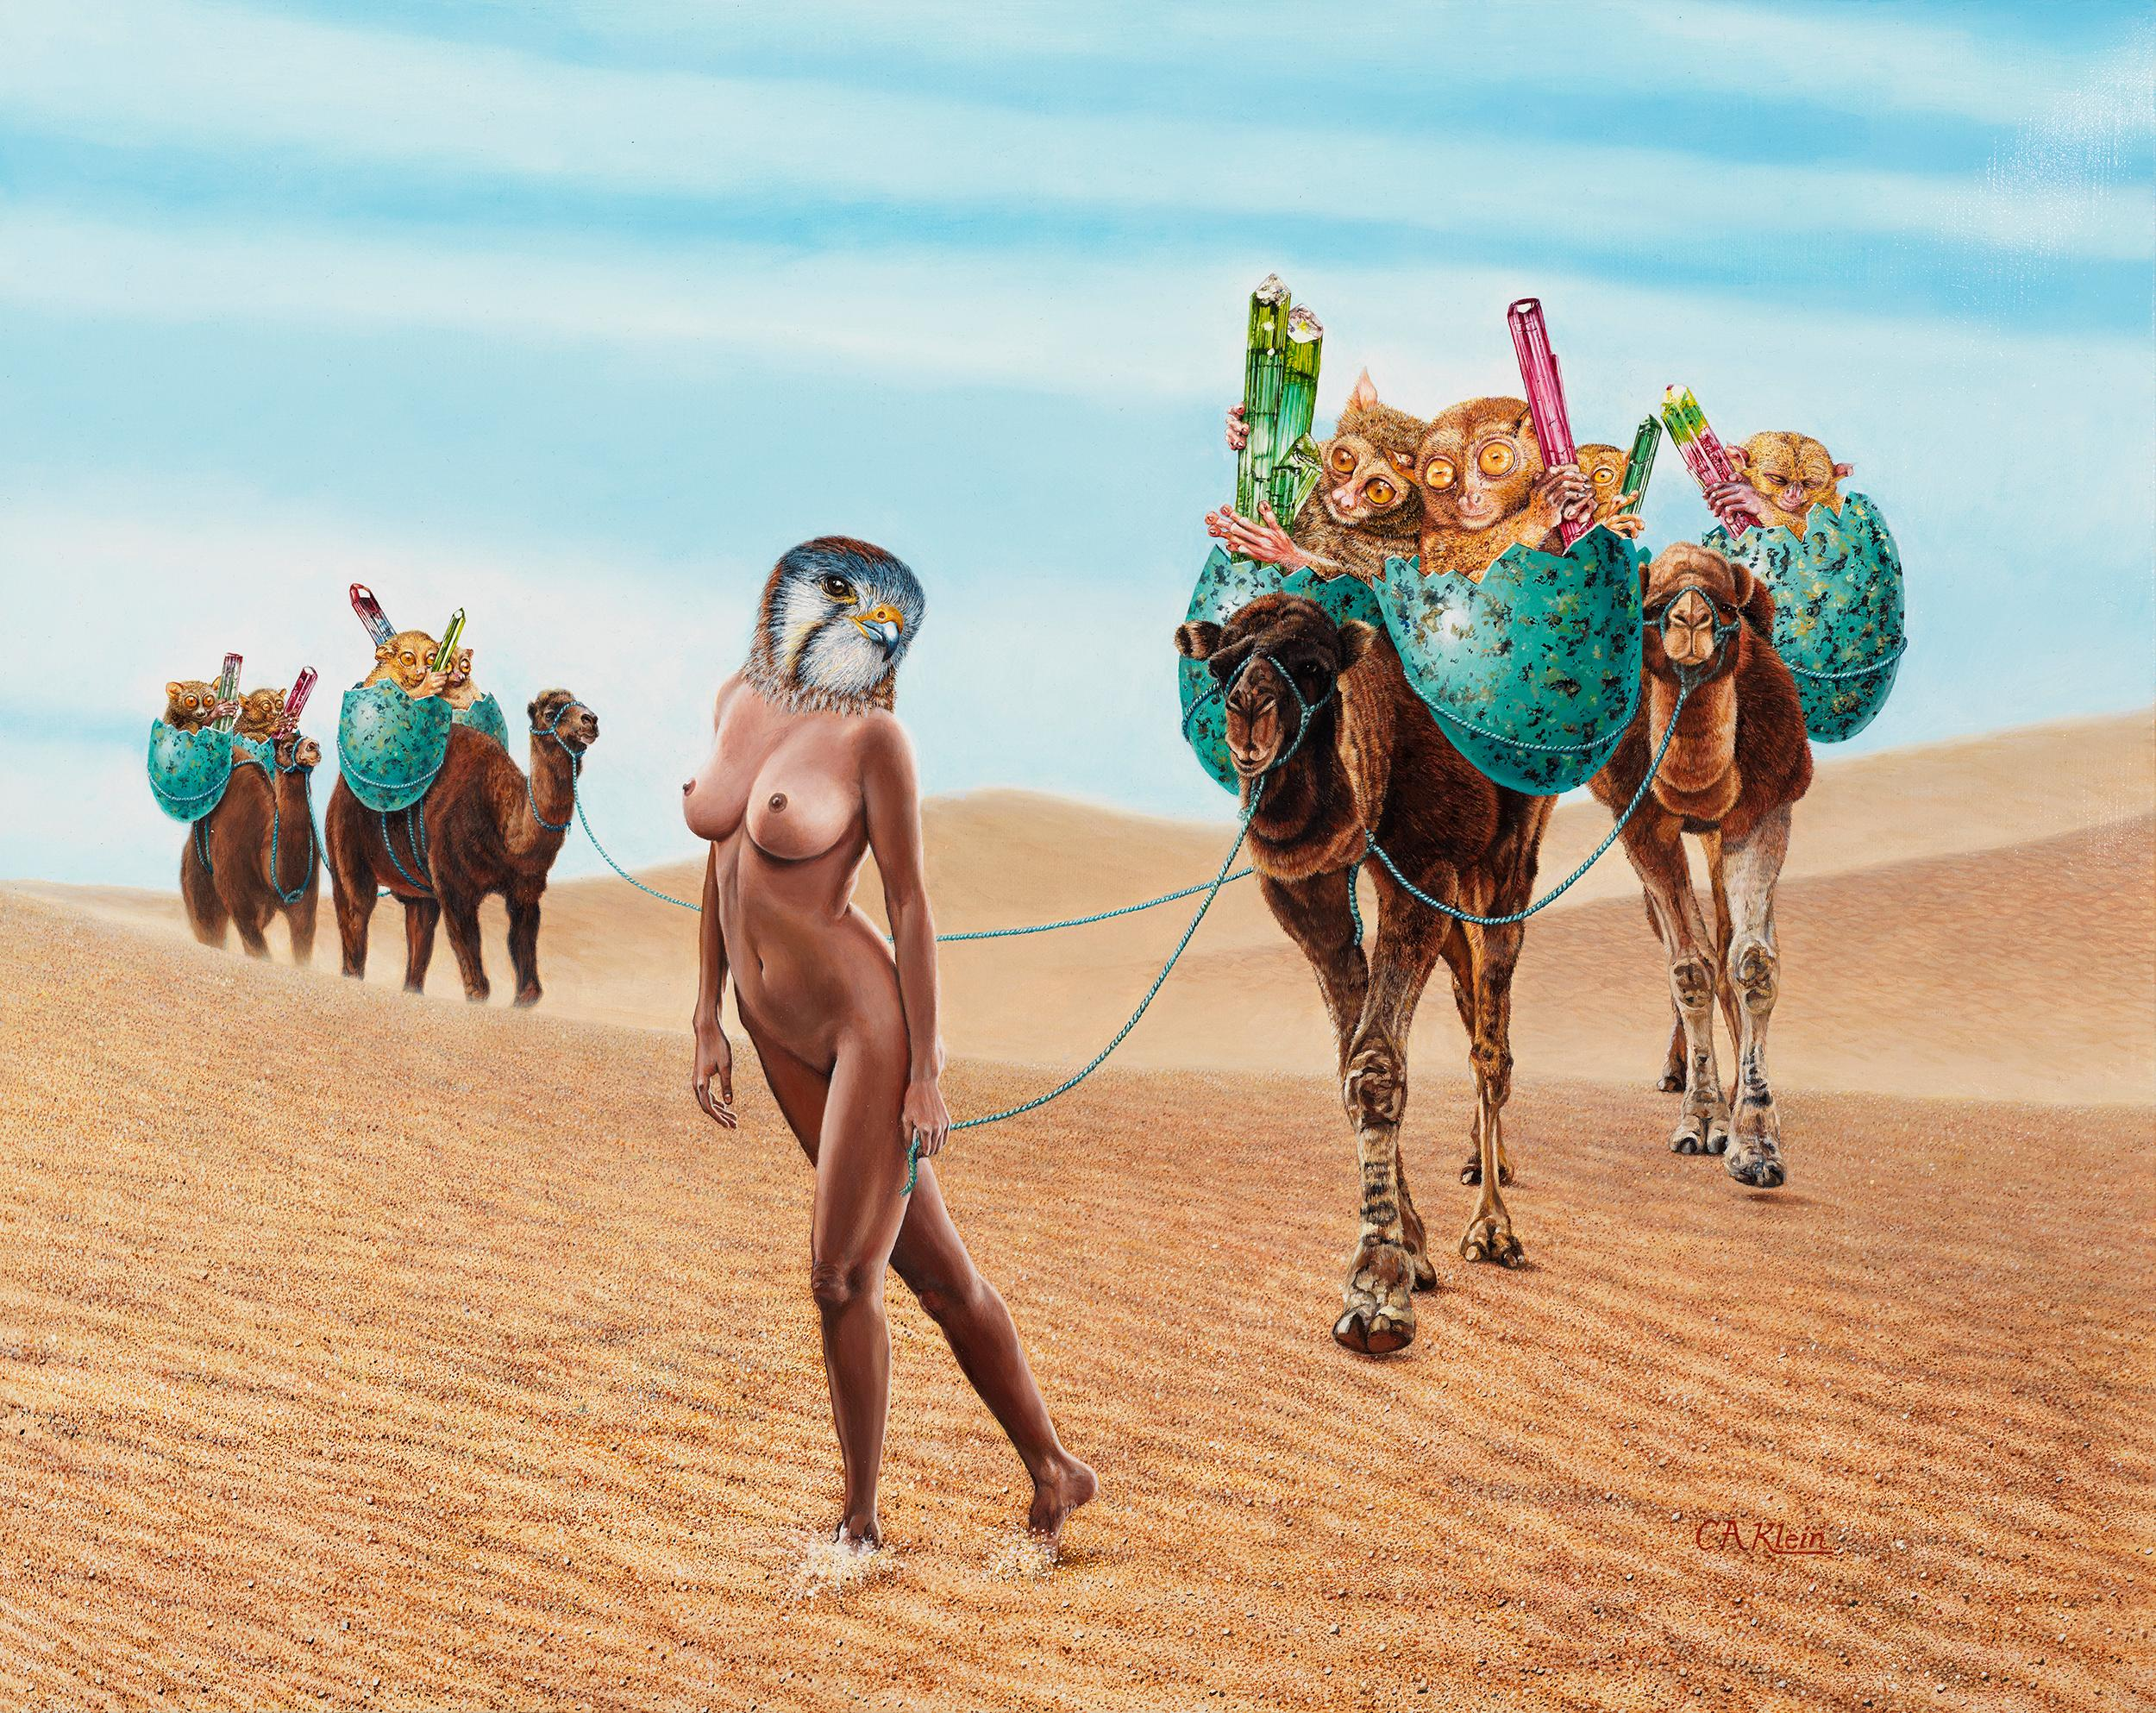 Coming Out of the Wasteland - Surreal Oil Painting with Nude Woman in the Desert